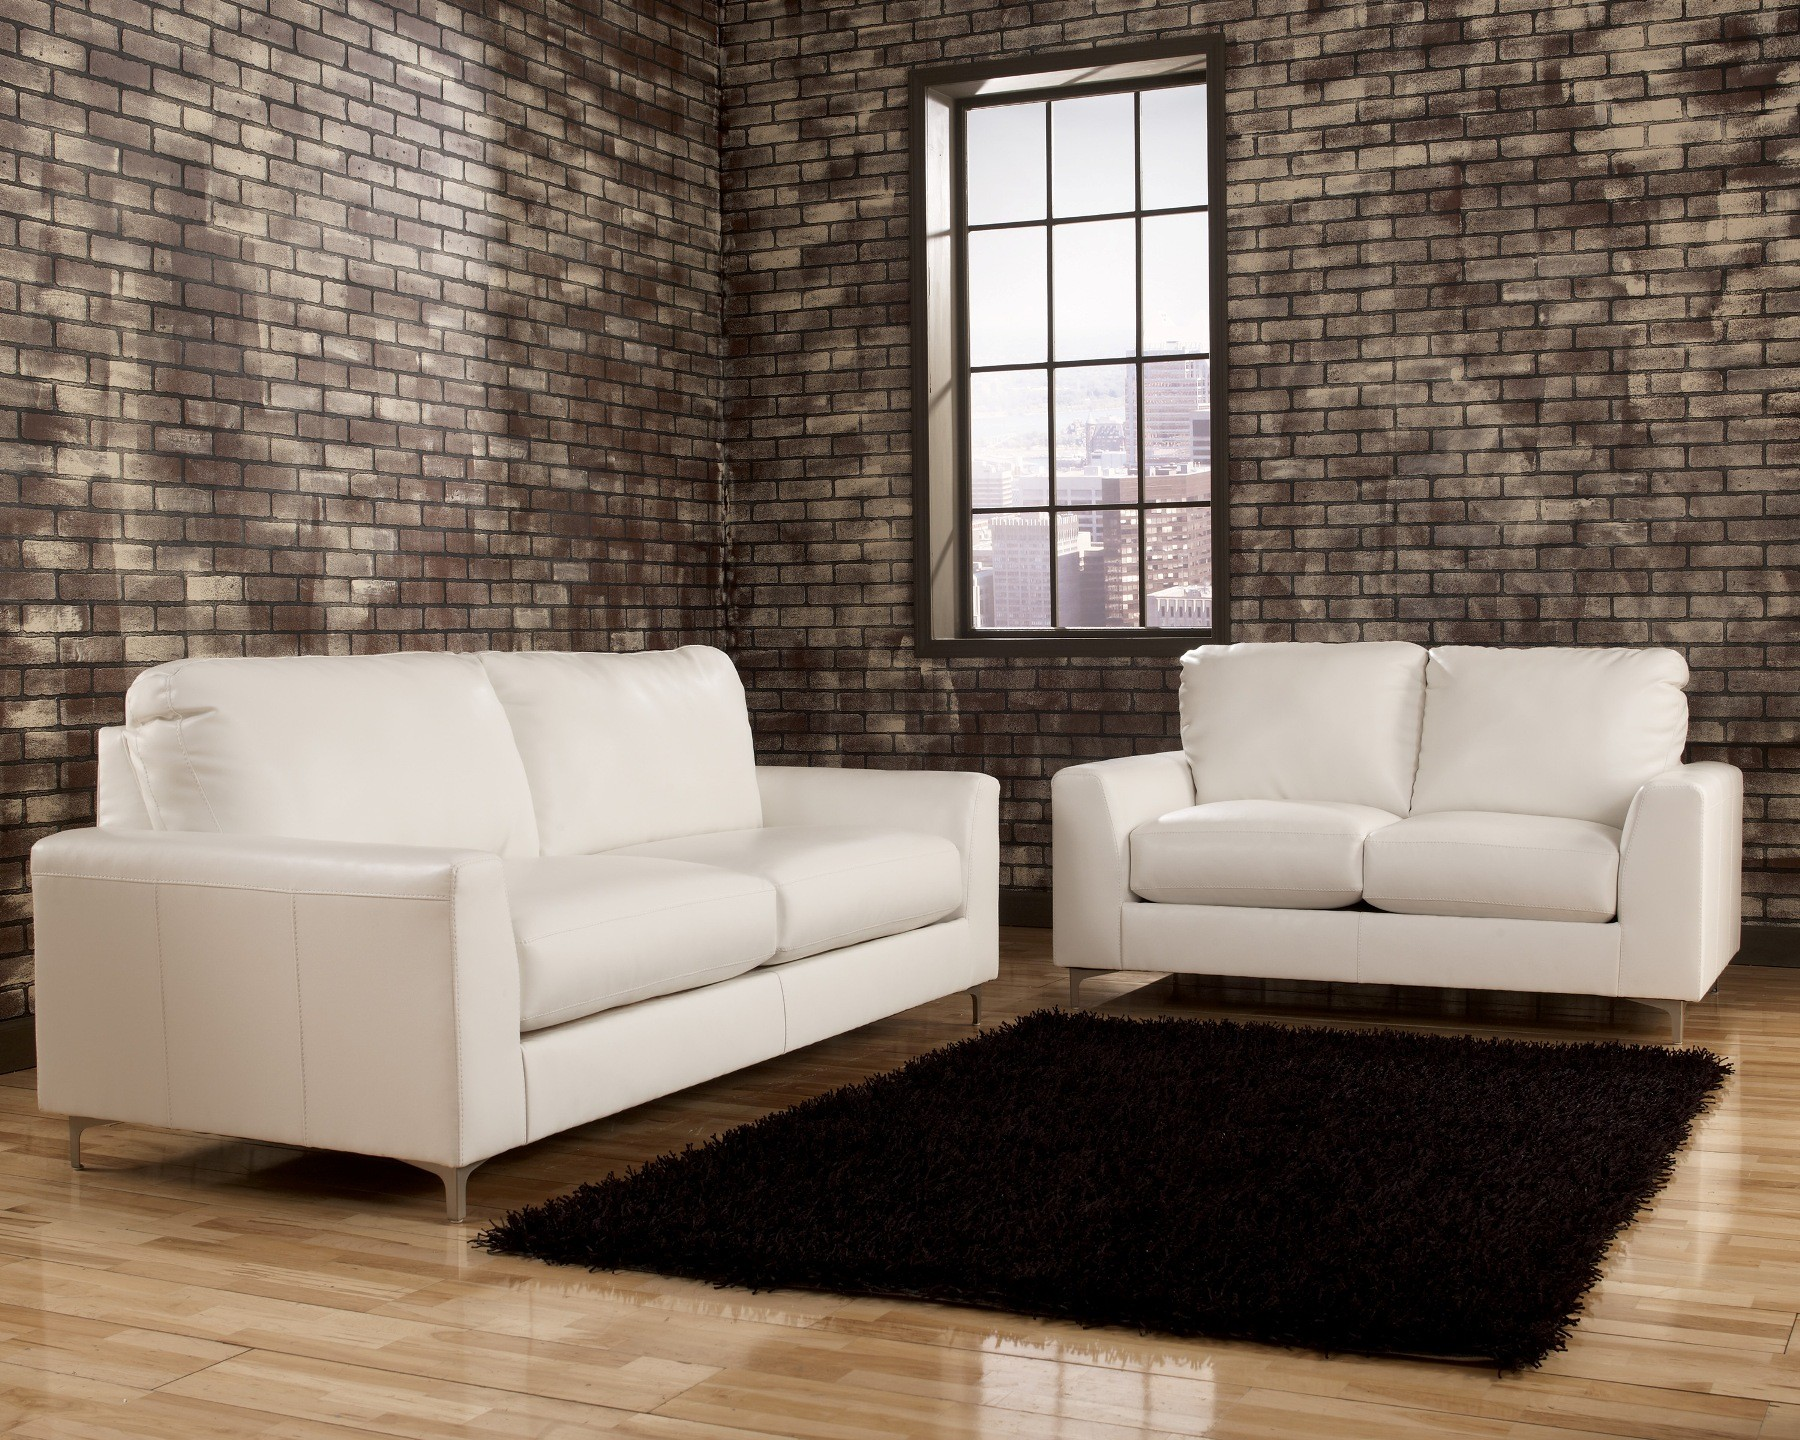 discount living room furniture free shipping | furniture dealers